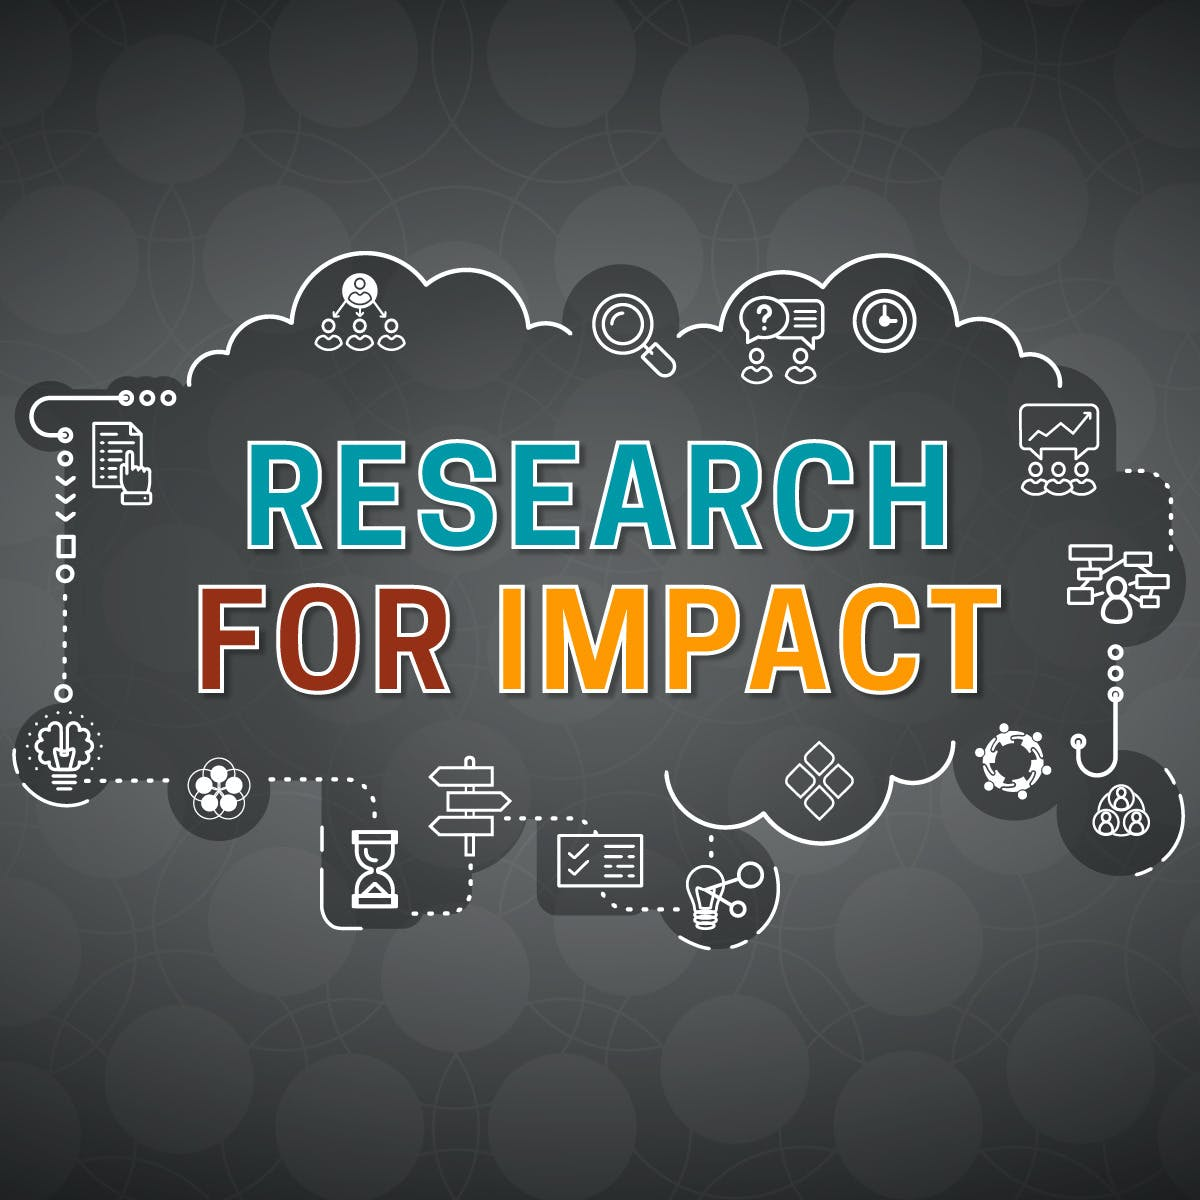 Research for Impact